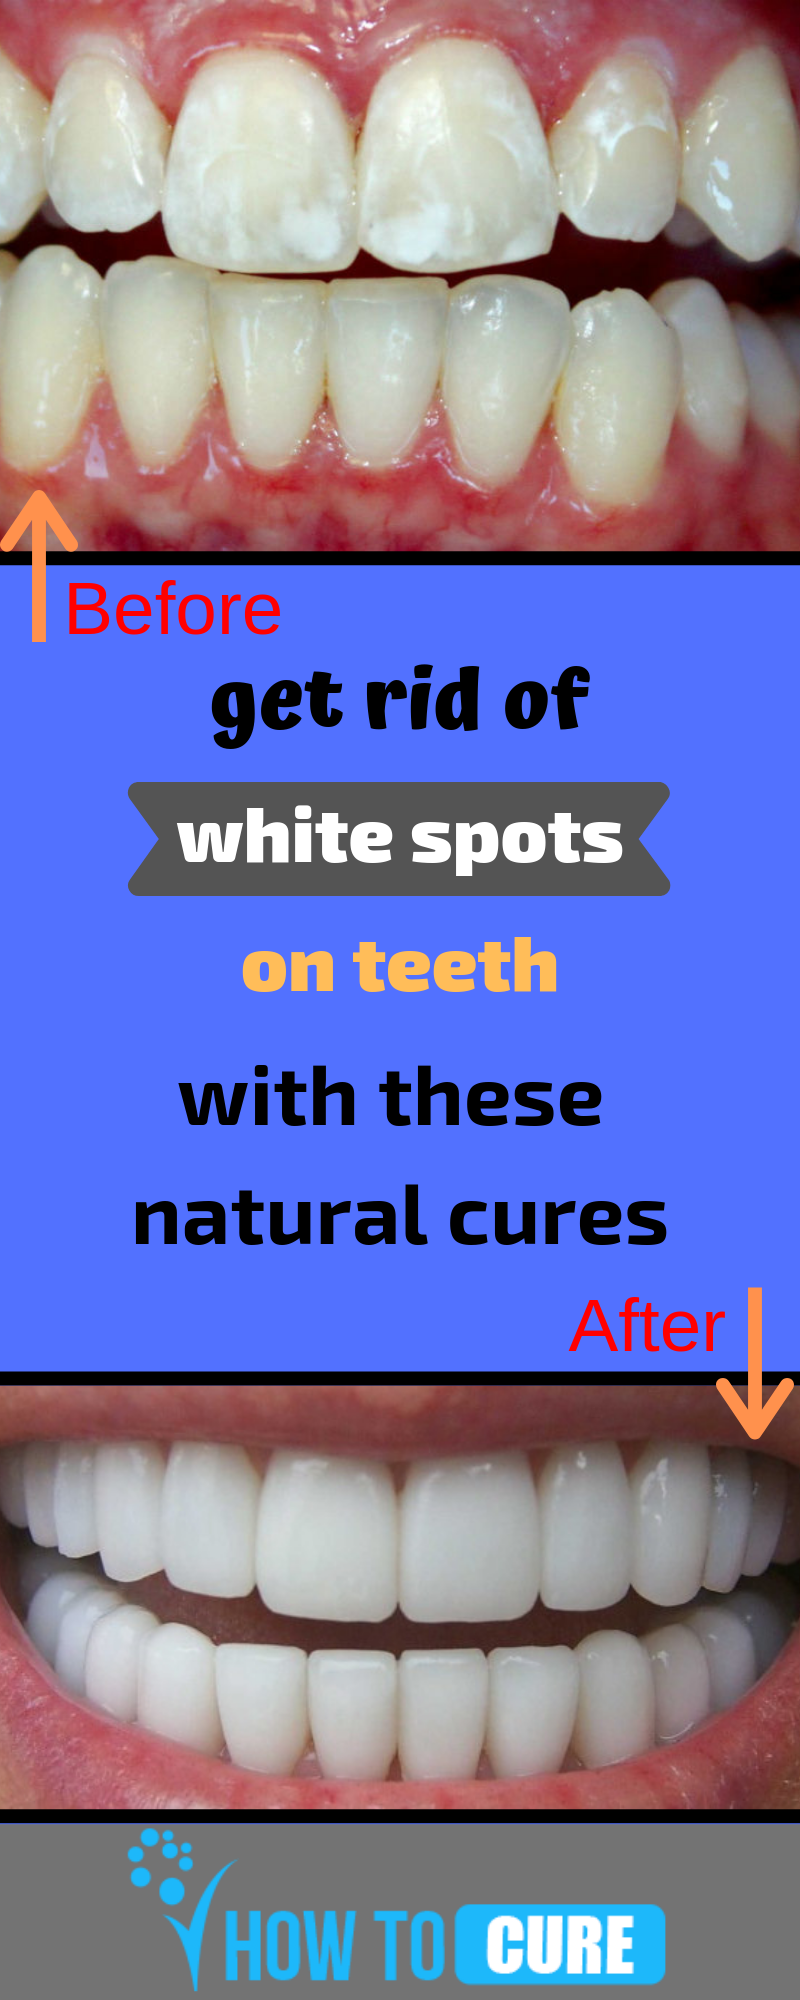 44c809ca167f1c619eb38a2e1cca1a25 - How To Get Rid Of White Spot Lesions On Teeth